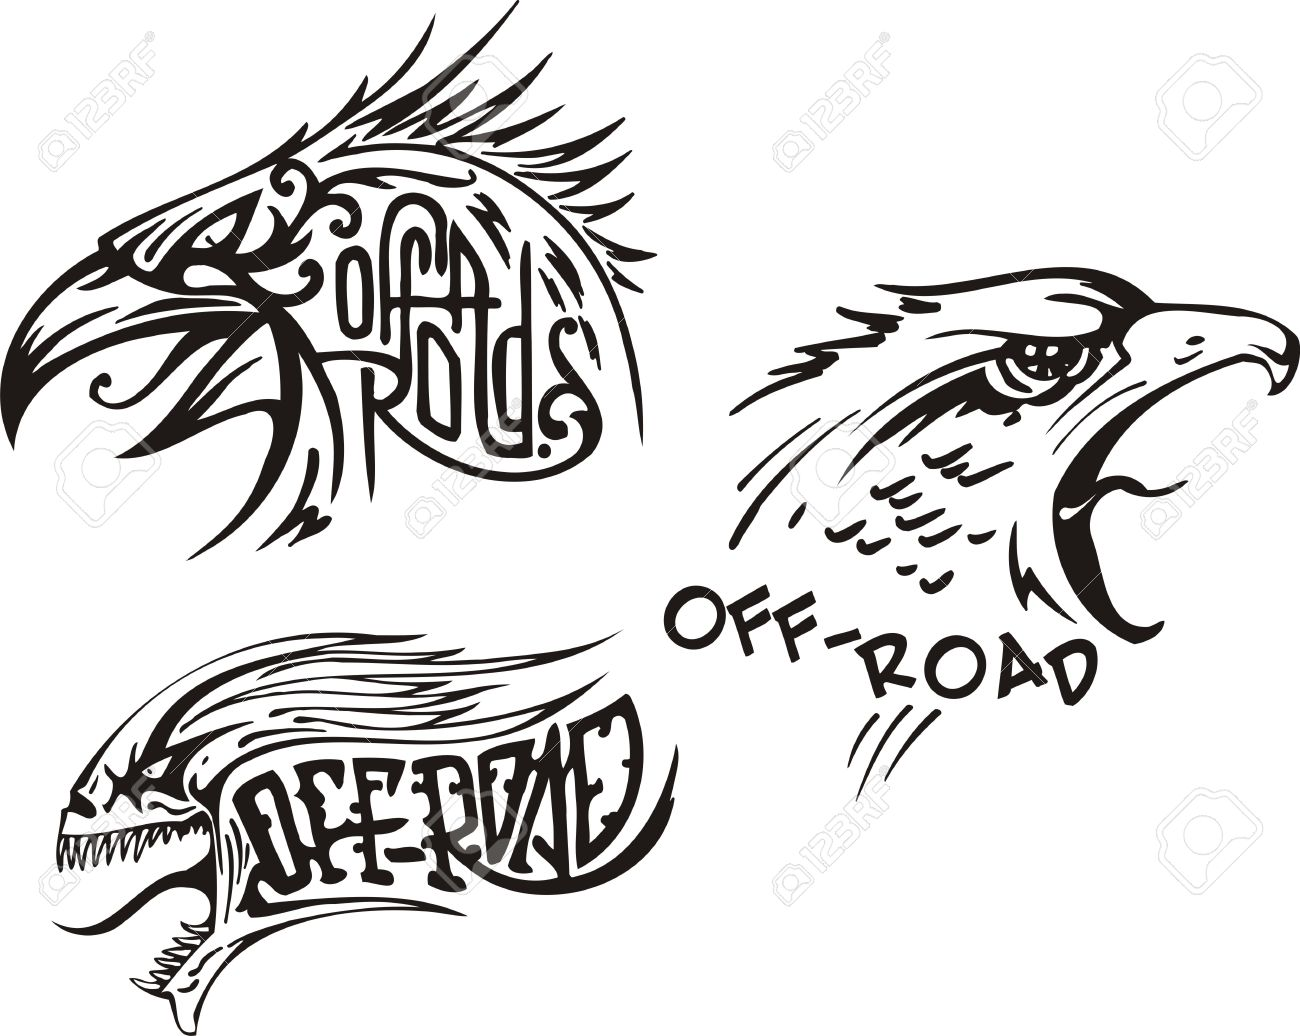 Eagle, the goshawk and a skull. Off-road symbols. Vector illustration ready for vinylcutting. Stock Vector - 8447718